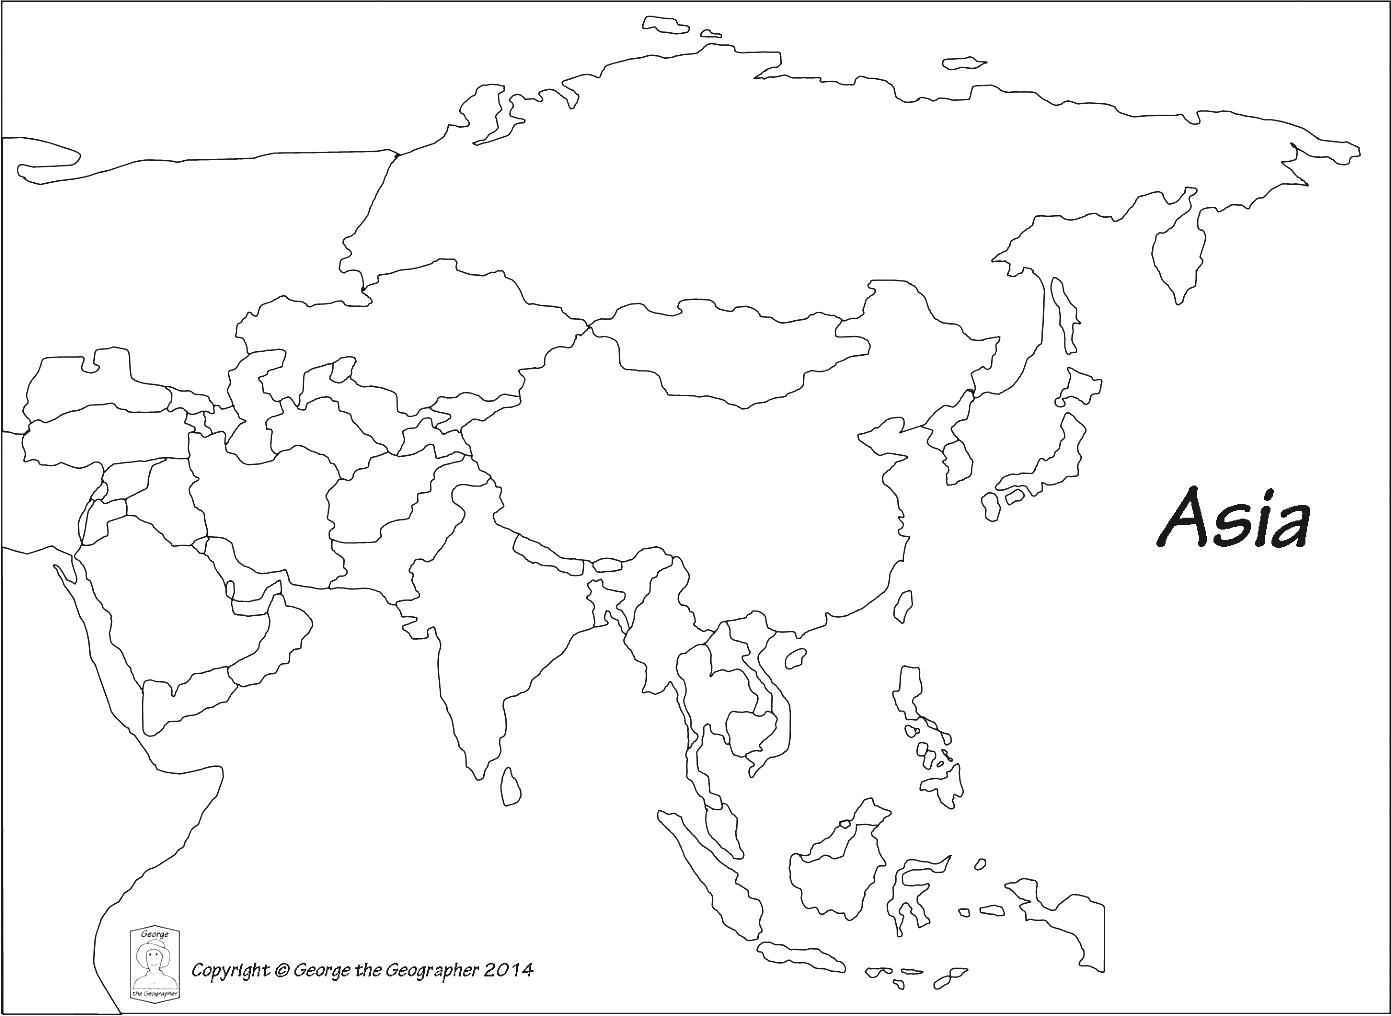 NIS 4th Grade Blog: All Asia Map Test